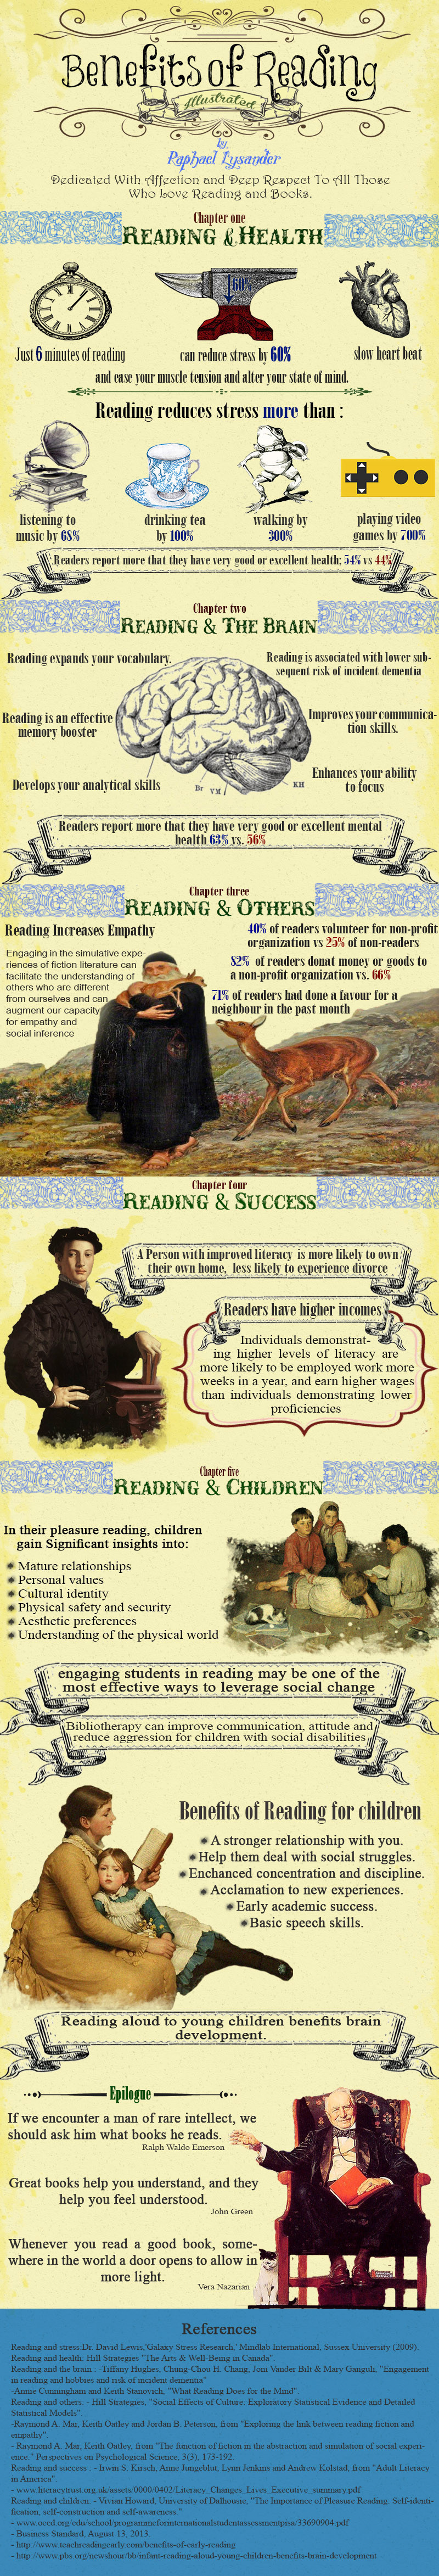 The_Benefits_of_Reading